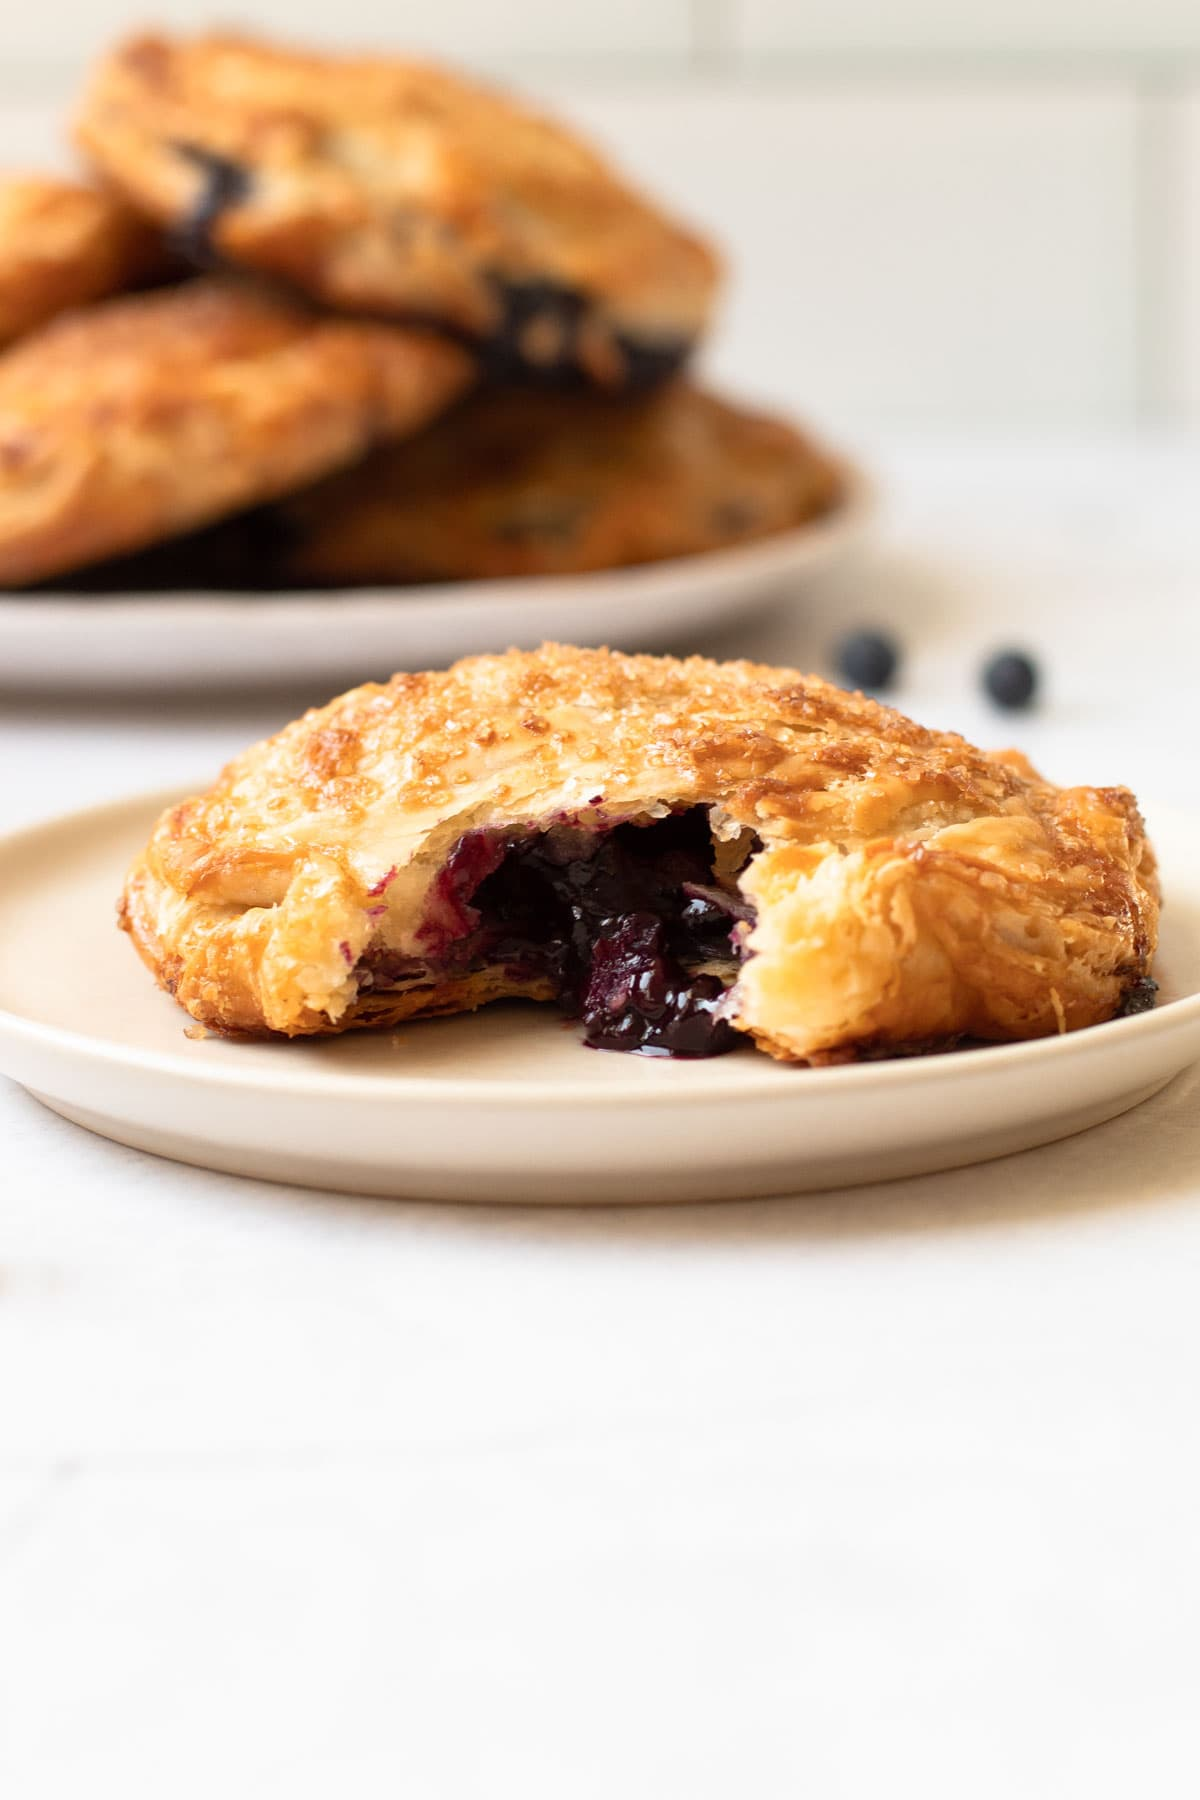 A blueberry hand pie on a plate.